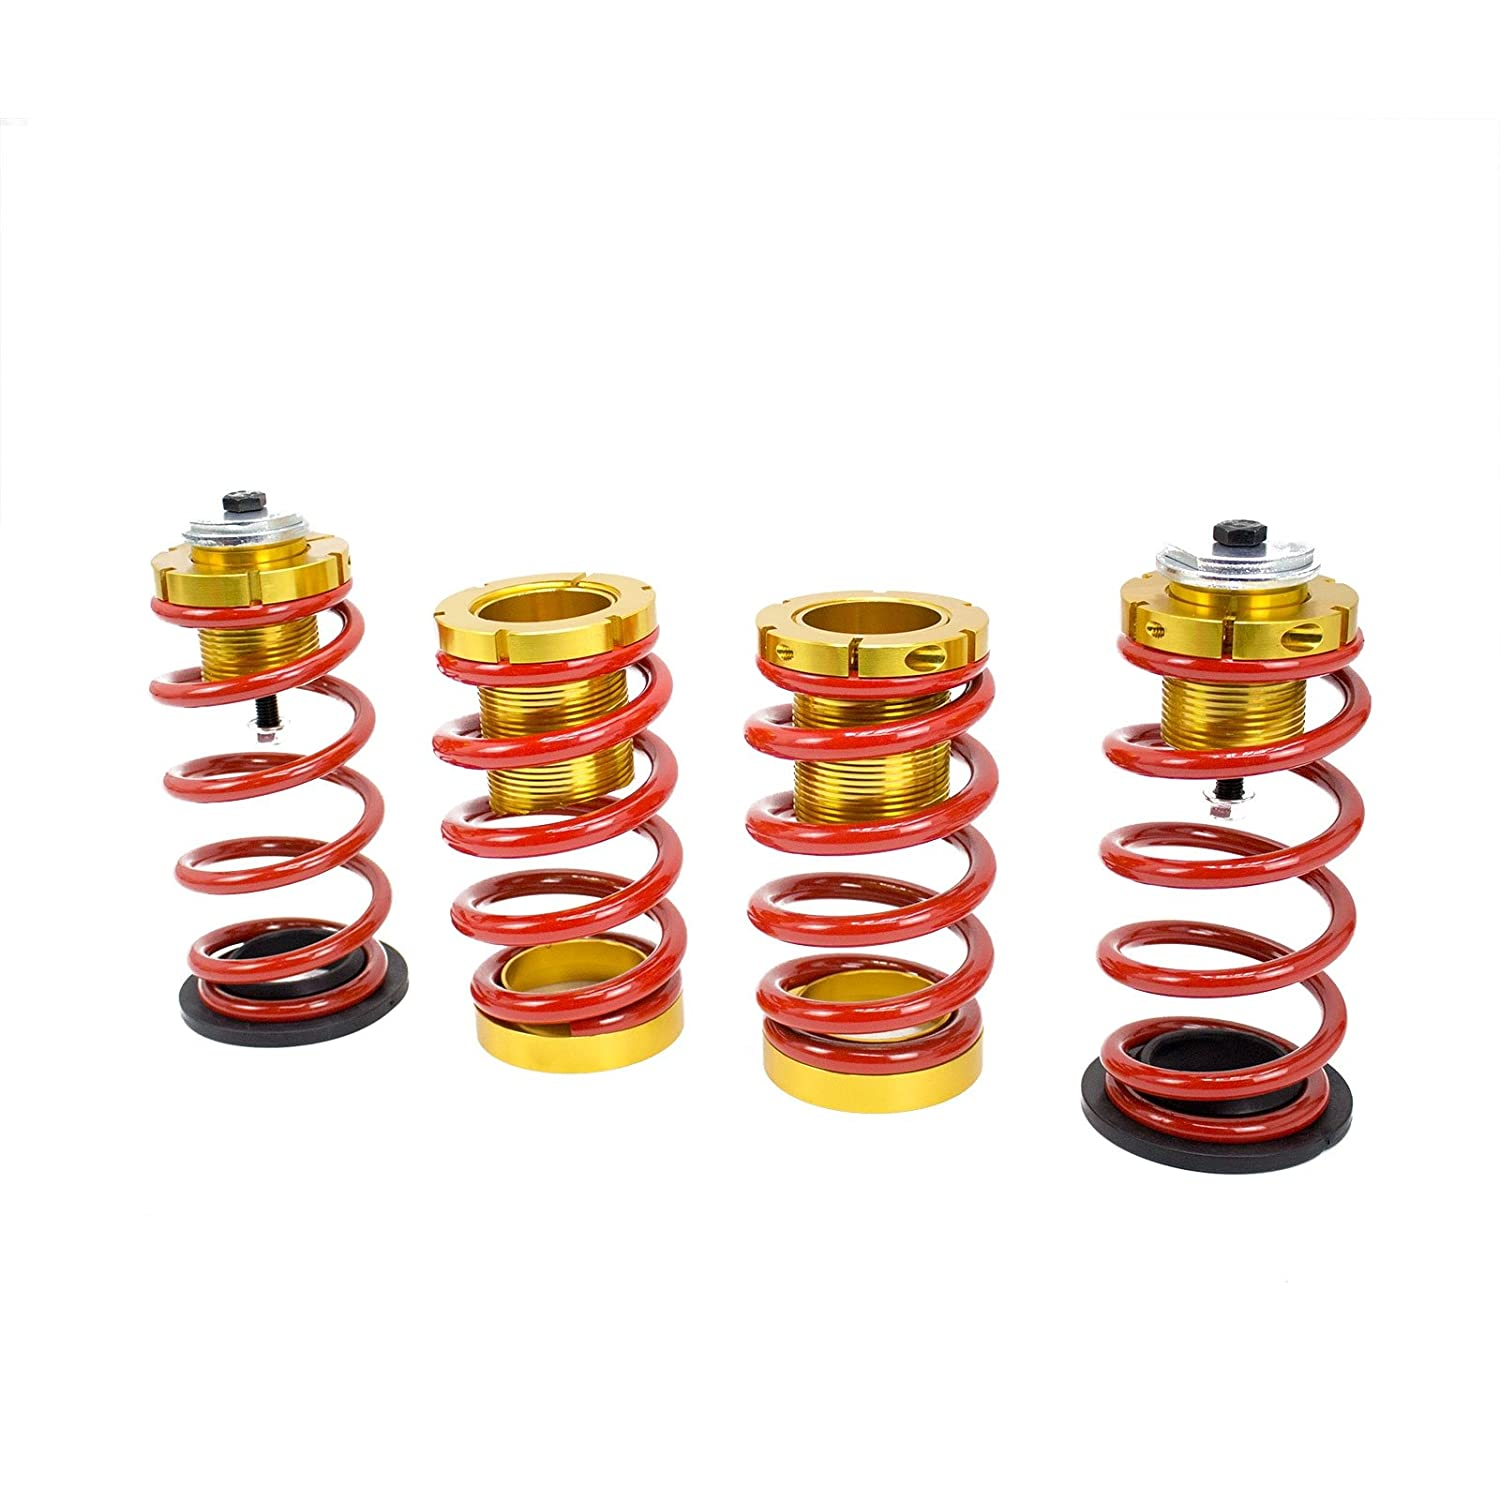 Honda Civic 12-15 Lowering Spring with Hi-Low Sleeve Kit, Red and Gold Rev9